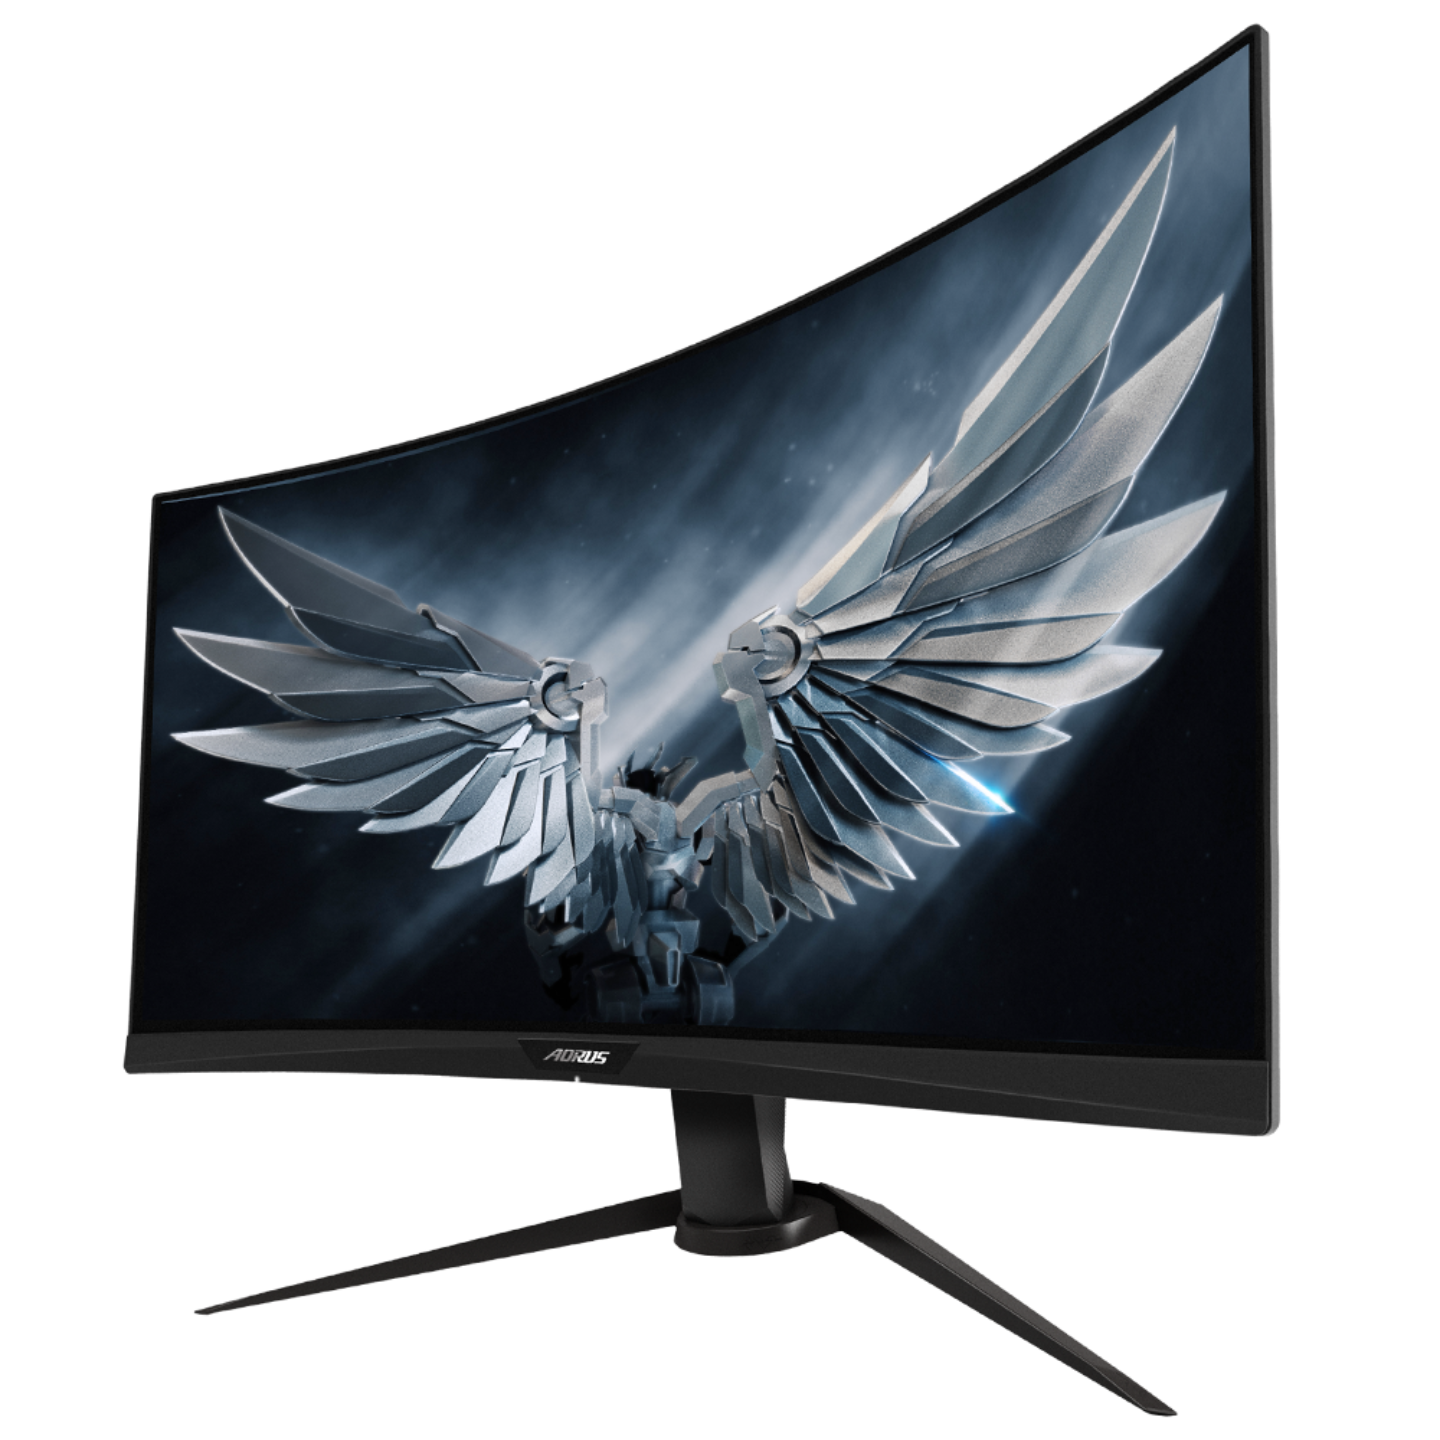 Gigabyte AORUS CV27F Gaming Monitor (Curved/165 Hz/1ms/27 Inch)